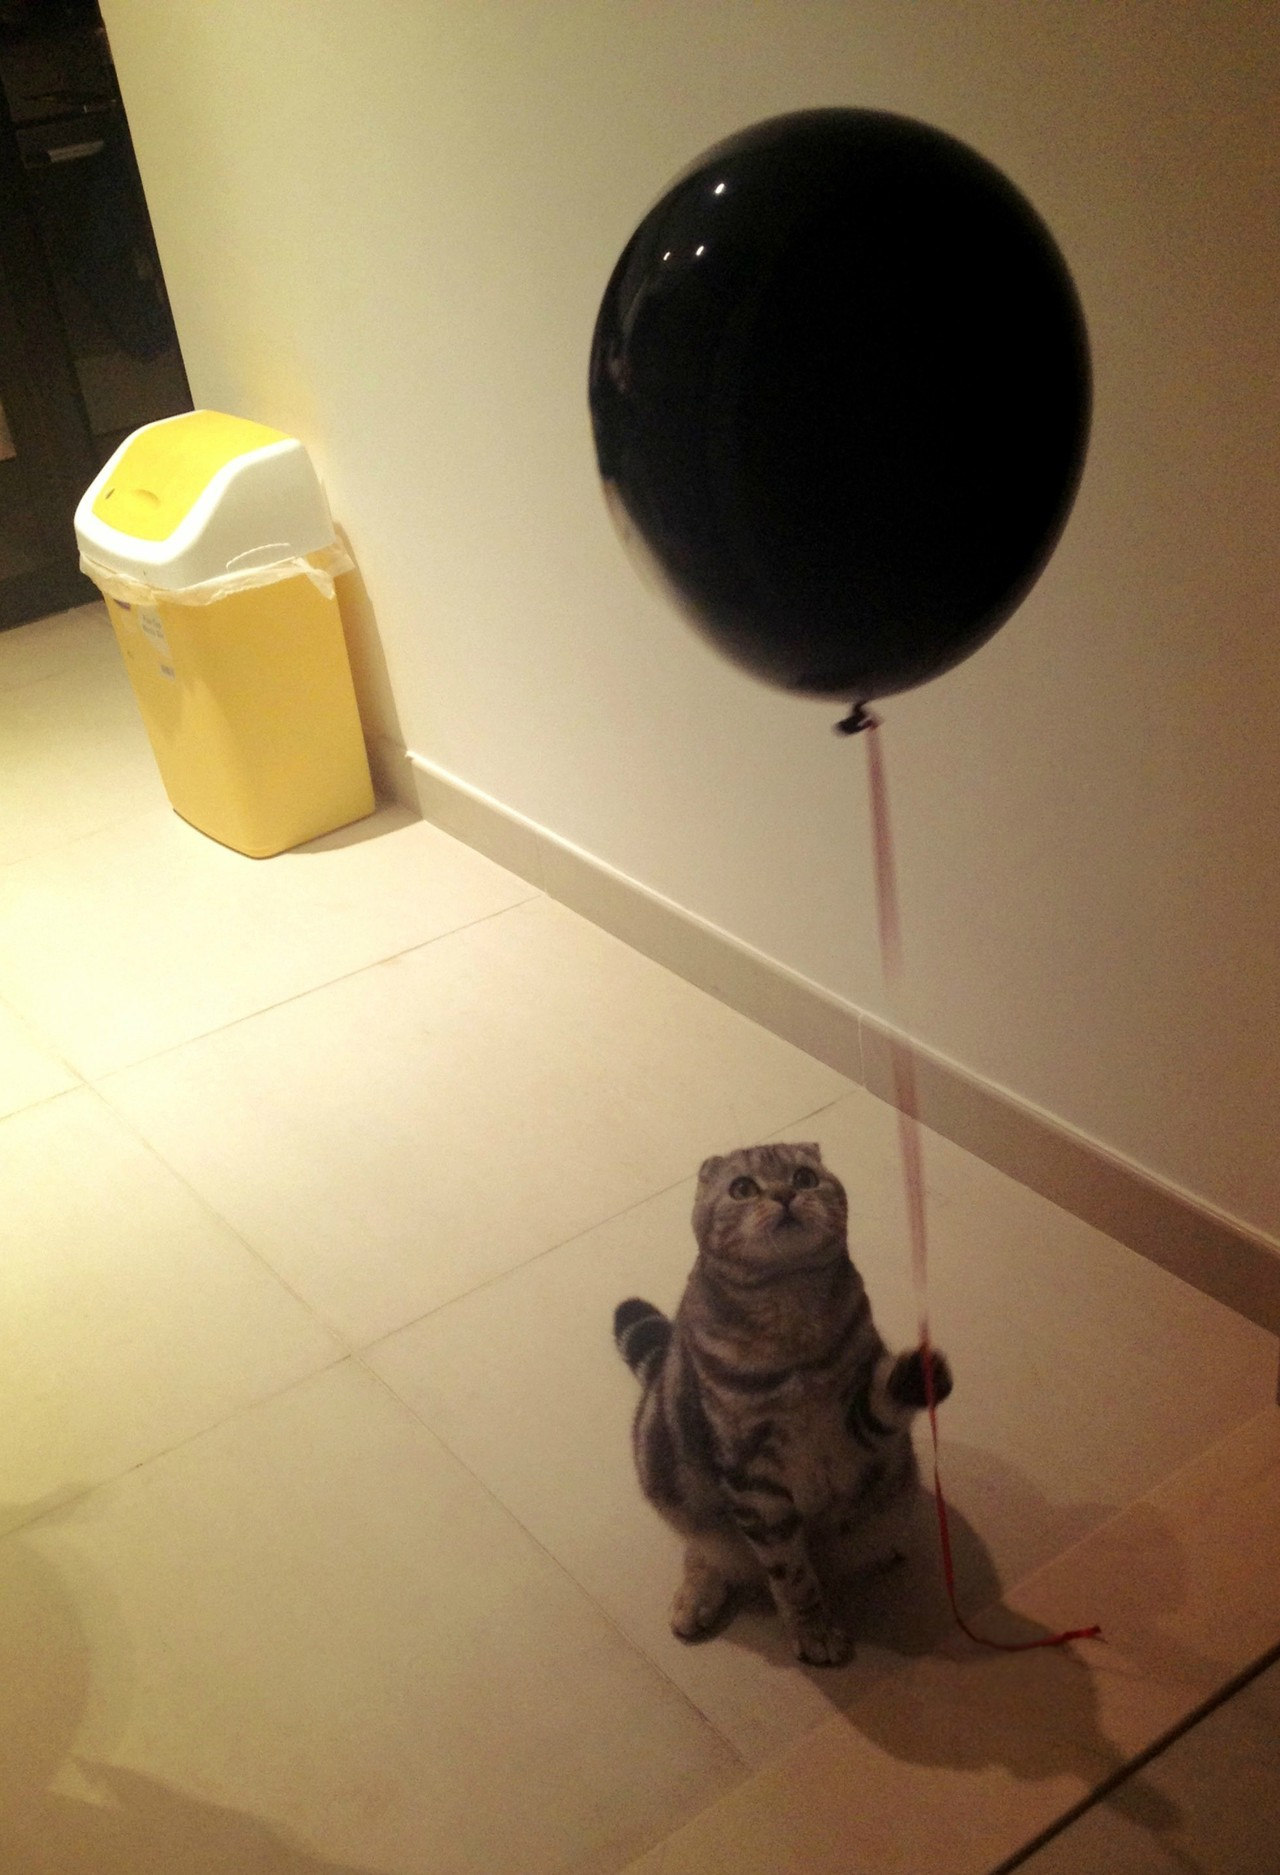 melmyfinger:  Awkward cat and awkward balloon.